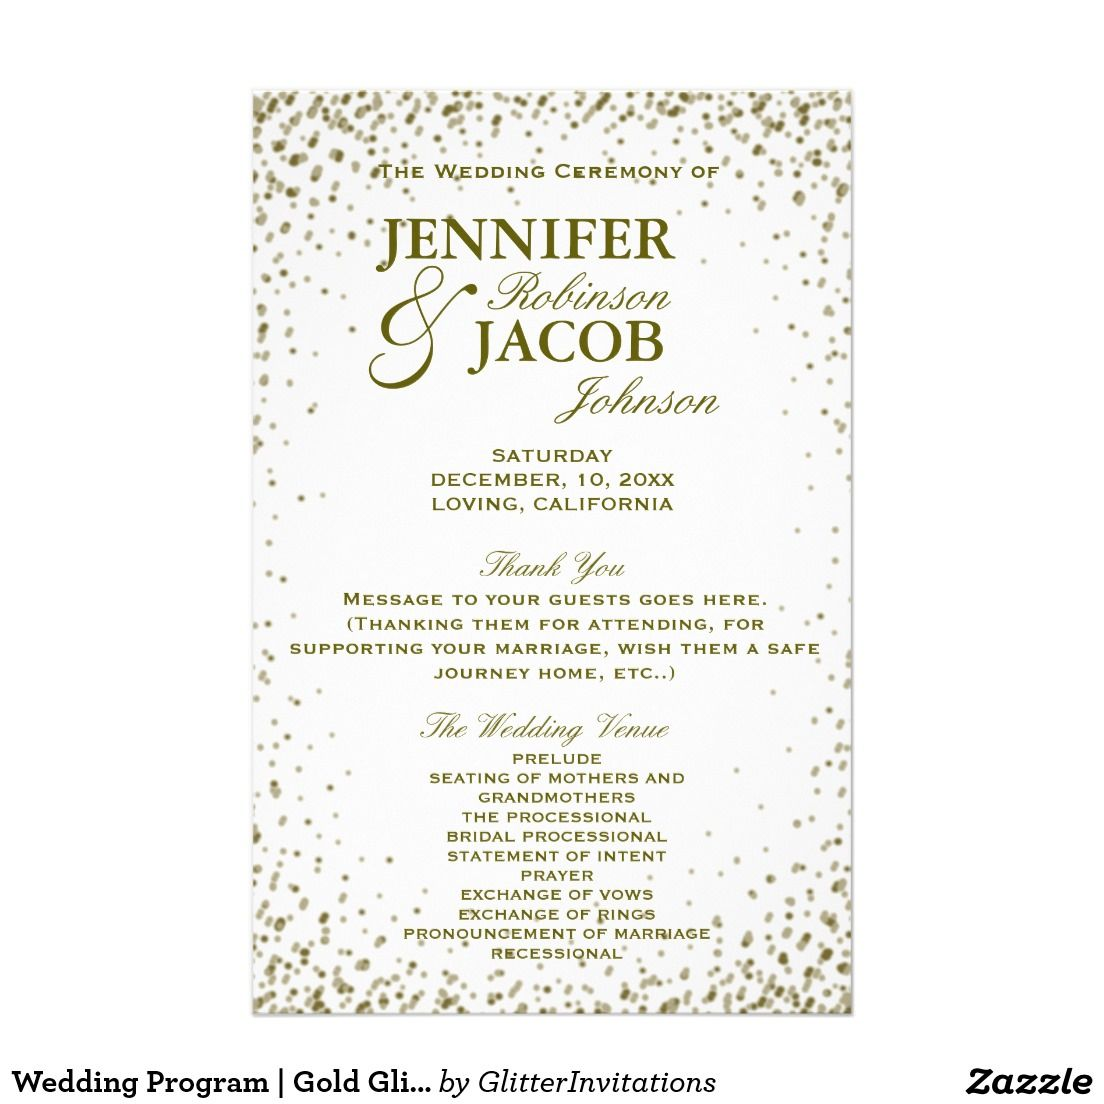 Wedding Program | Gold Glitter Confetti This charming and elegant wedding program features gold glitter confetti and would look great for your event. It is fully customizable with your text, and, you can change the font and colors in order to make it truly yours.